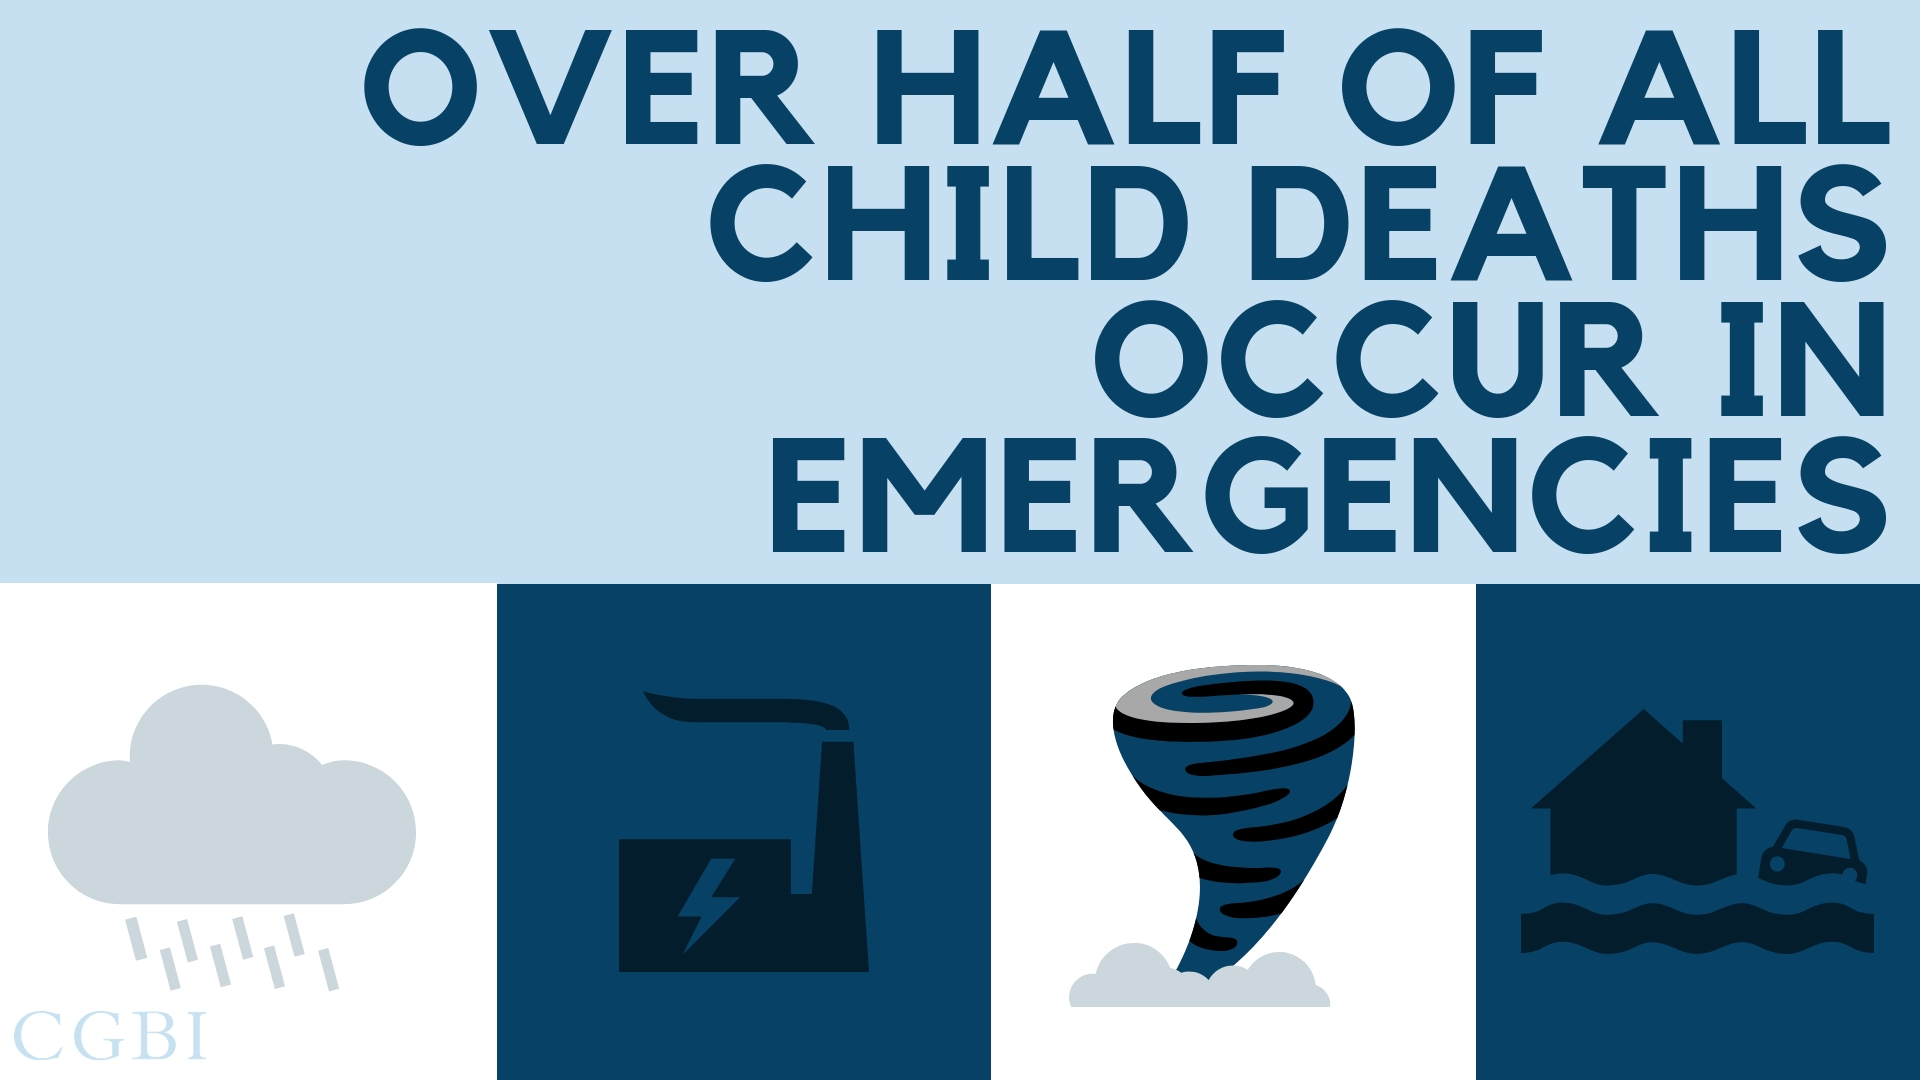 Over half of all child deaths occur in emergencies.